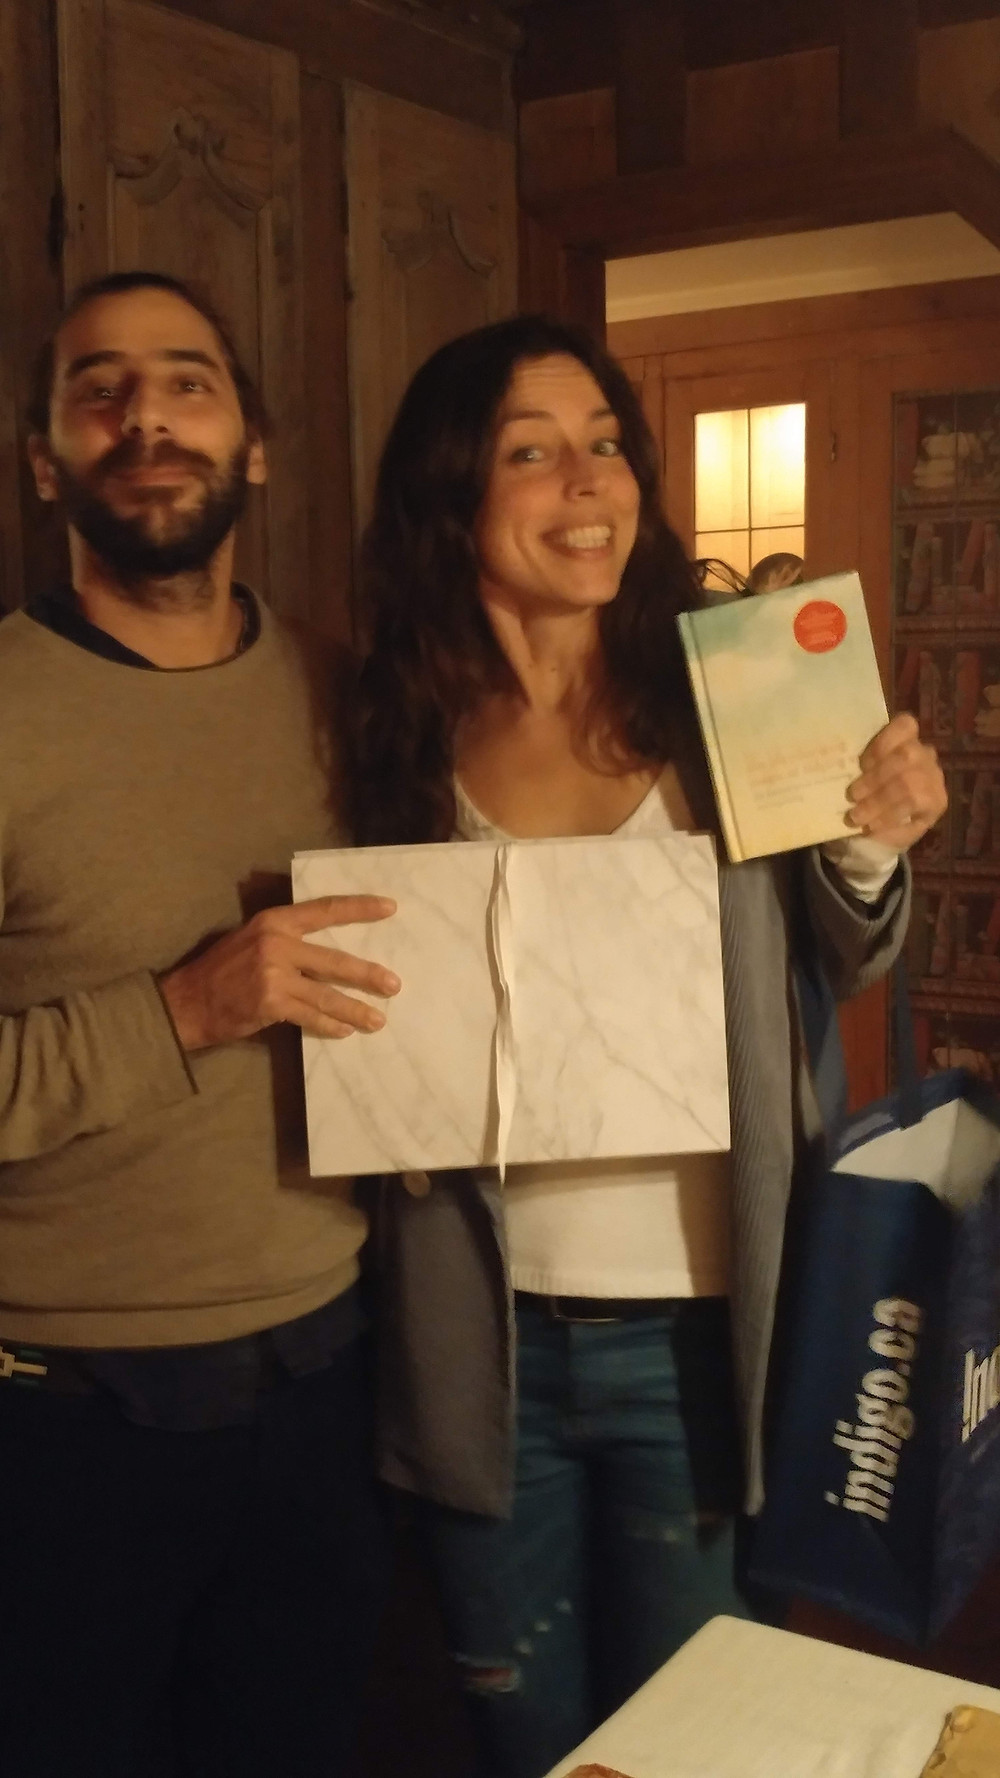 Couple holding a classifying folder and Marie Kondo book as Christmas gifts.